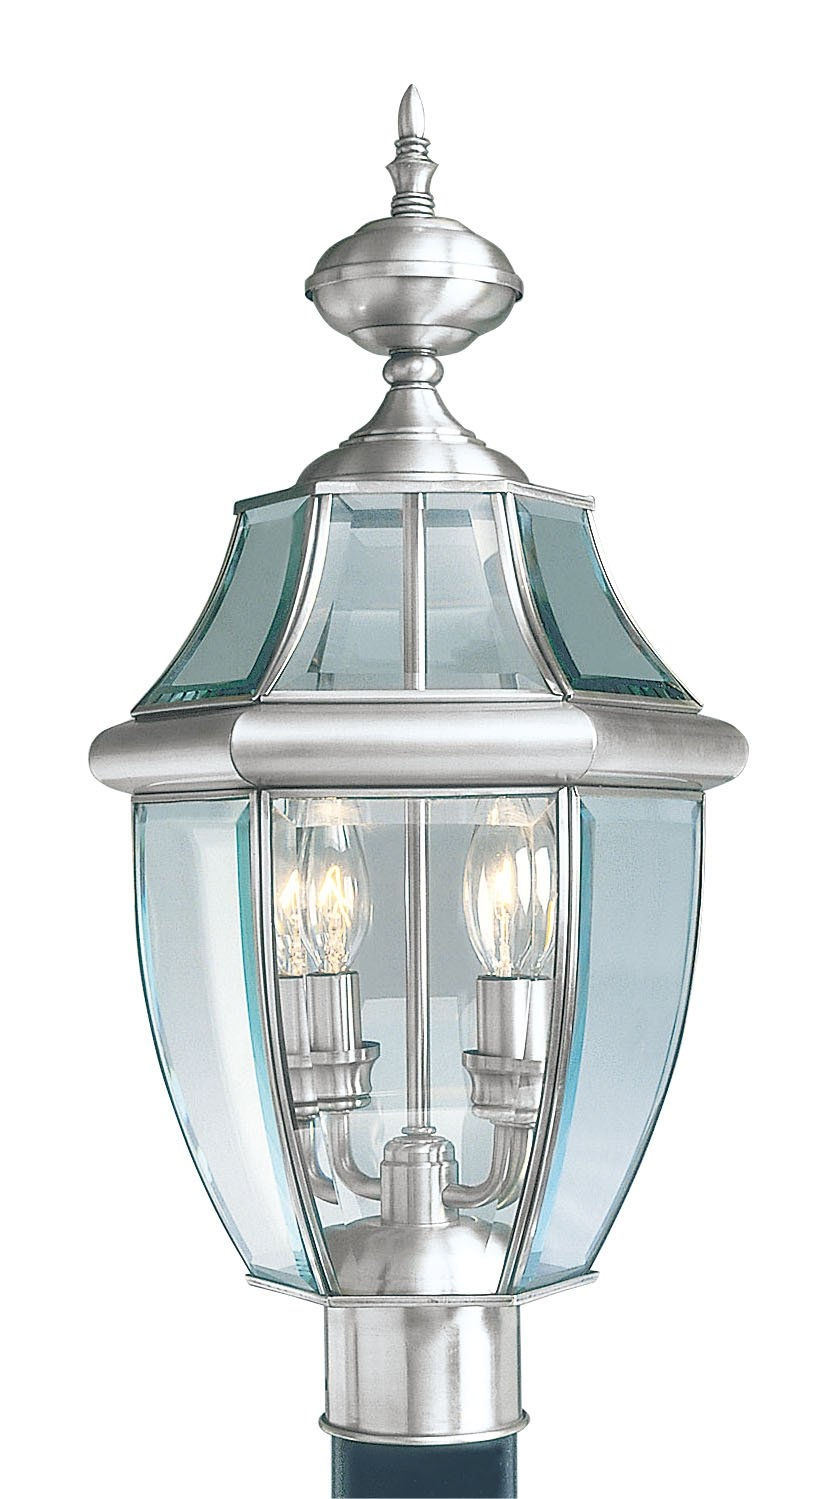 Livex Lighting 2254-91 Monterey 2 Light Outdoor Brushed Nickel Finish Solid Brass Post Head with Clear Beveled Glass